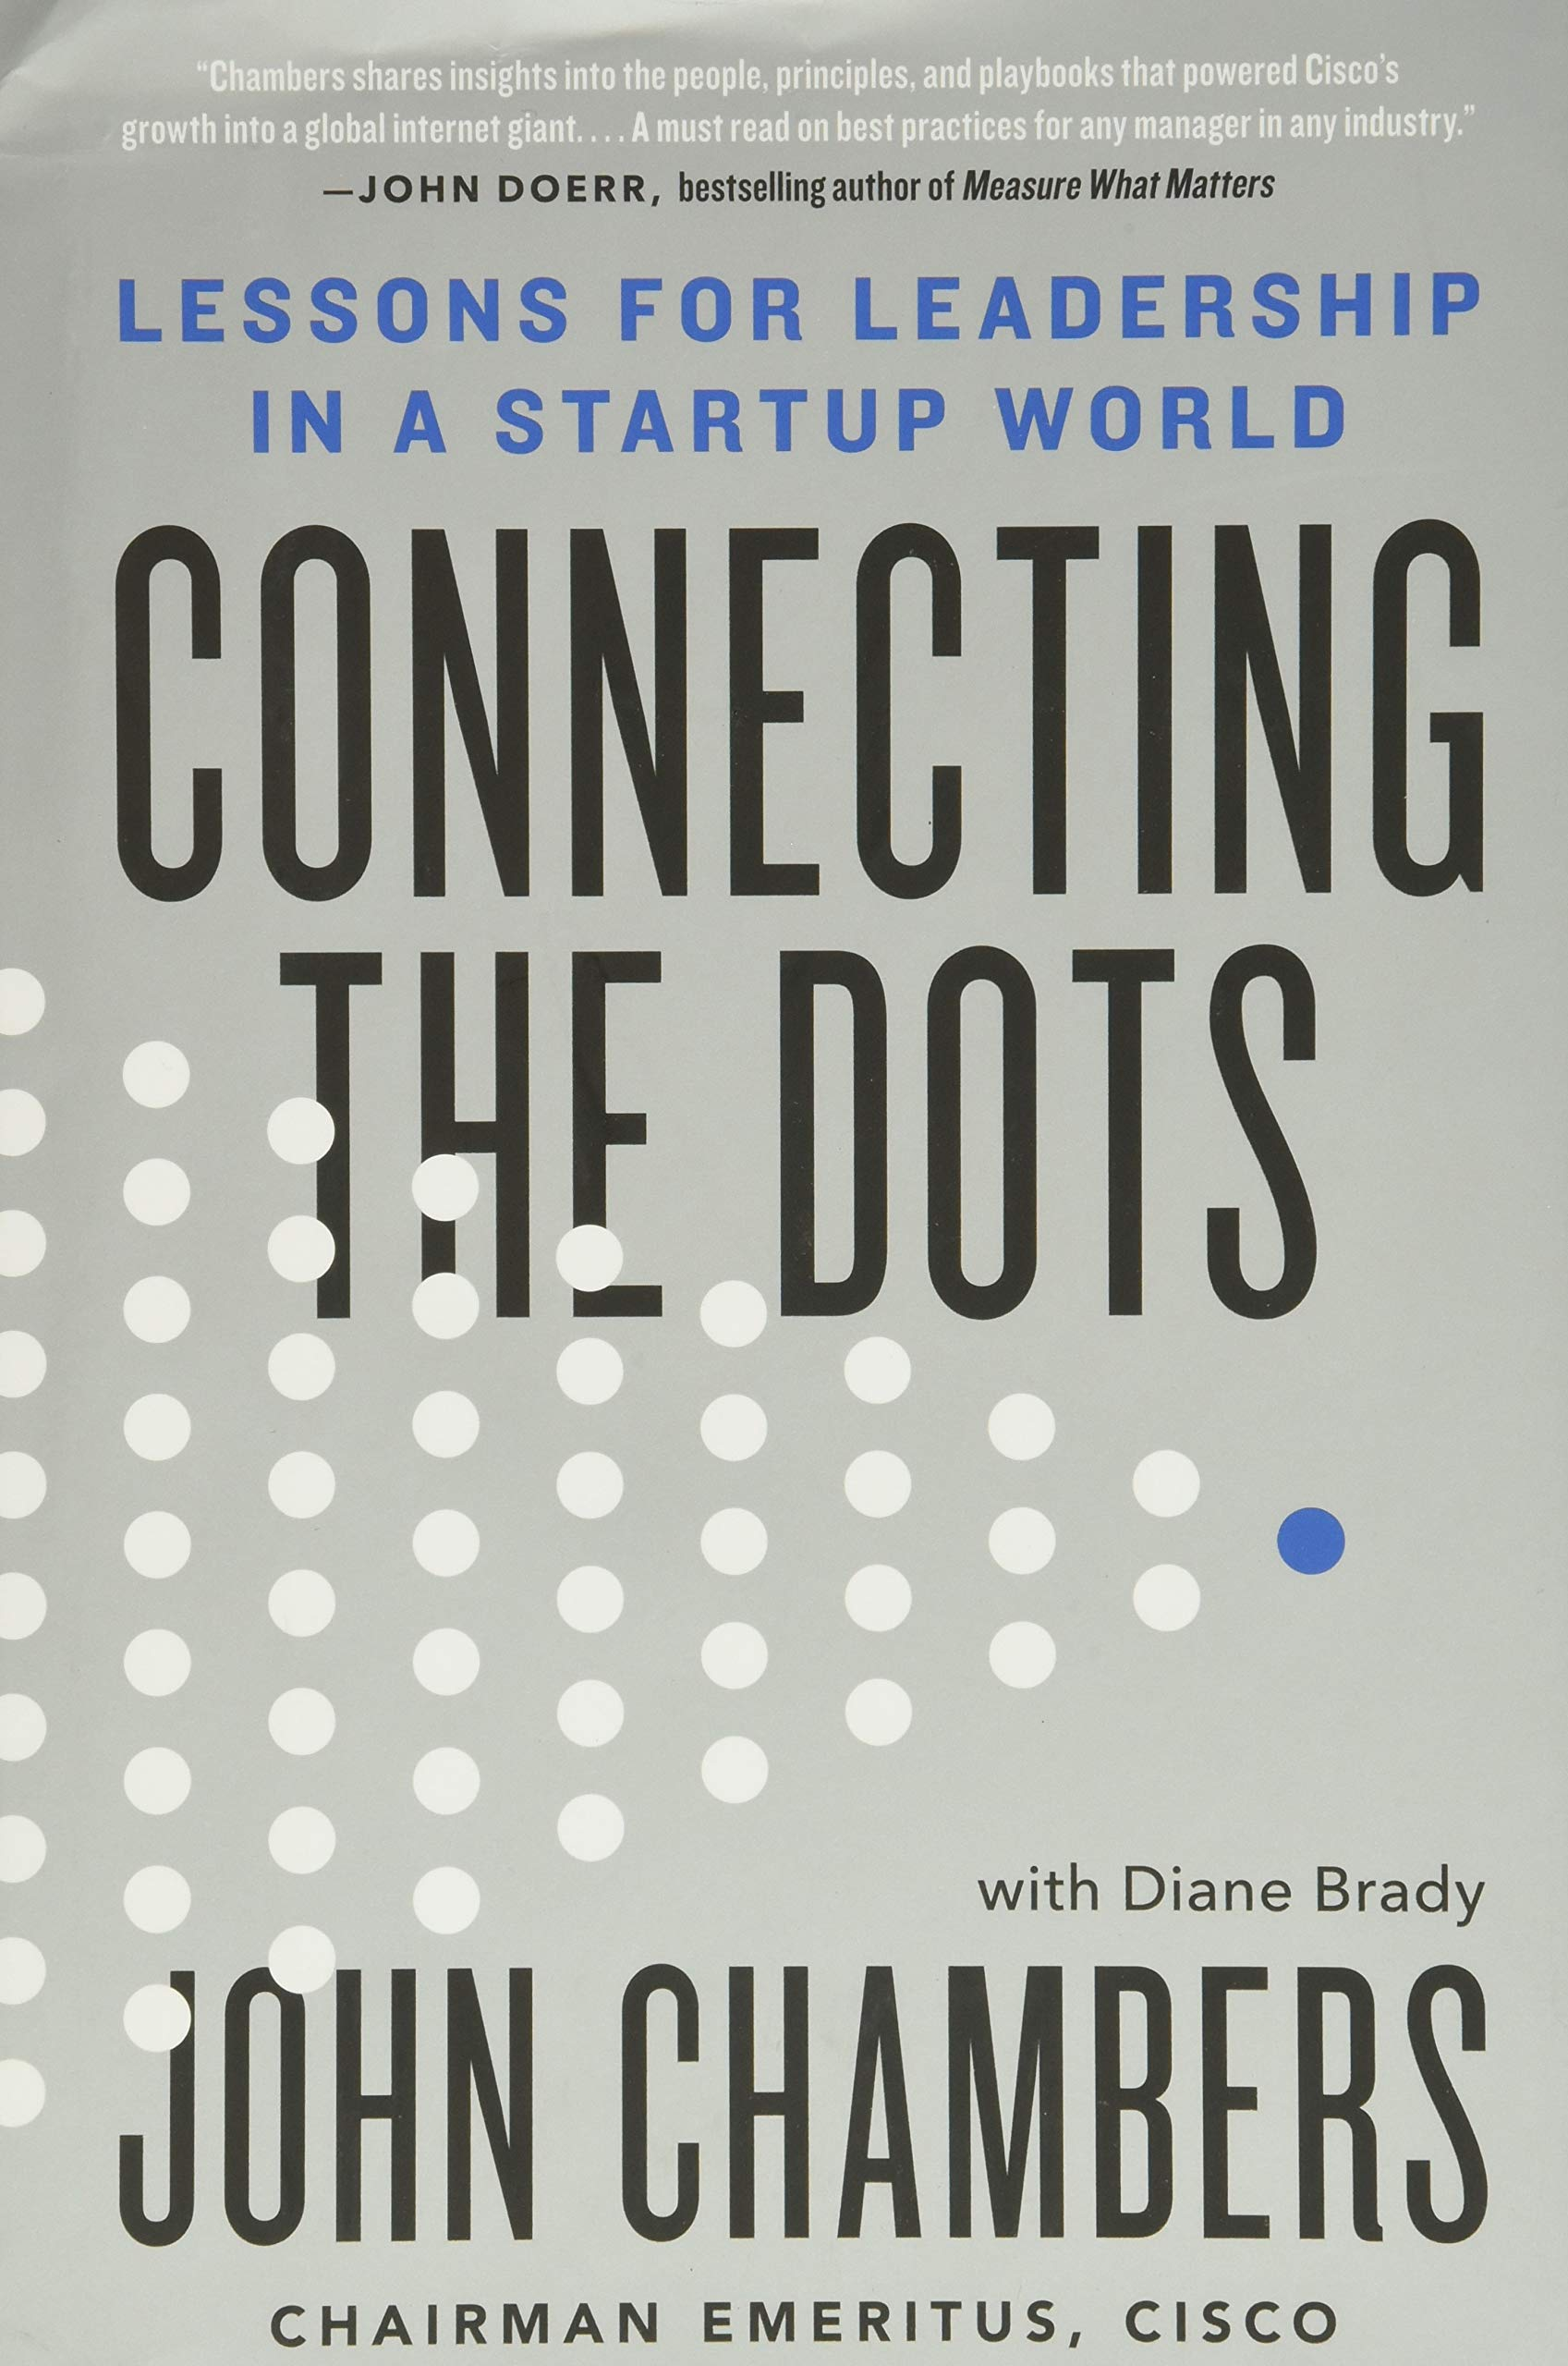 Connecting-the-Dots-John-Chambers - Cisco - startup book